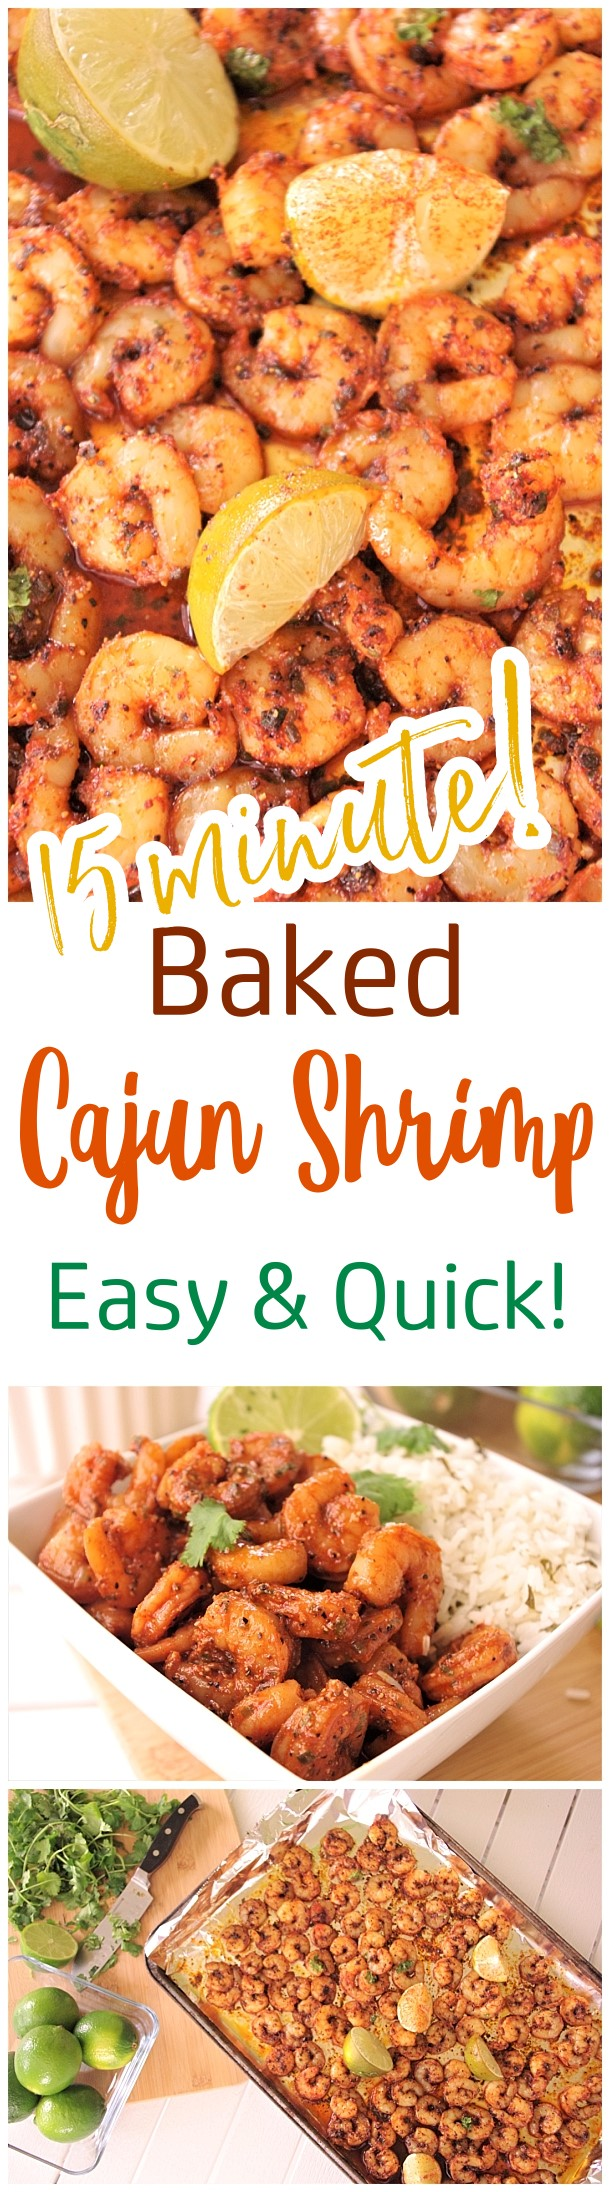 Baked Sheet Pan Cajun Shrimp Recipe - 15 minutes and so delicious! Use it in tacos, meal prep bowls, or over rice or noodles. So versatile and the flavor is so yummy you'll want to eat the entire pan by itself! - Dreaming in DIY #sheetpansuppers #sheetpanrecipes #sheetpandinners #onepanmeals #healthyrecipes #mealprep #easyrecipes #healthydinners #healthysuppers #healthylunches #simplefamilymeals #simplefamilyrecipes #simplerecipes